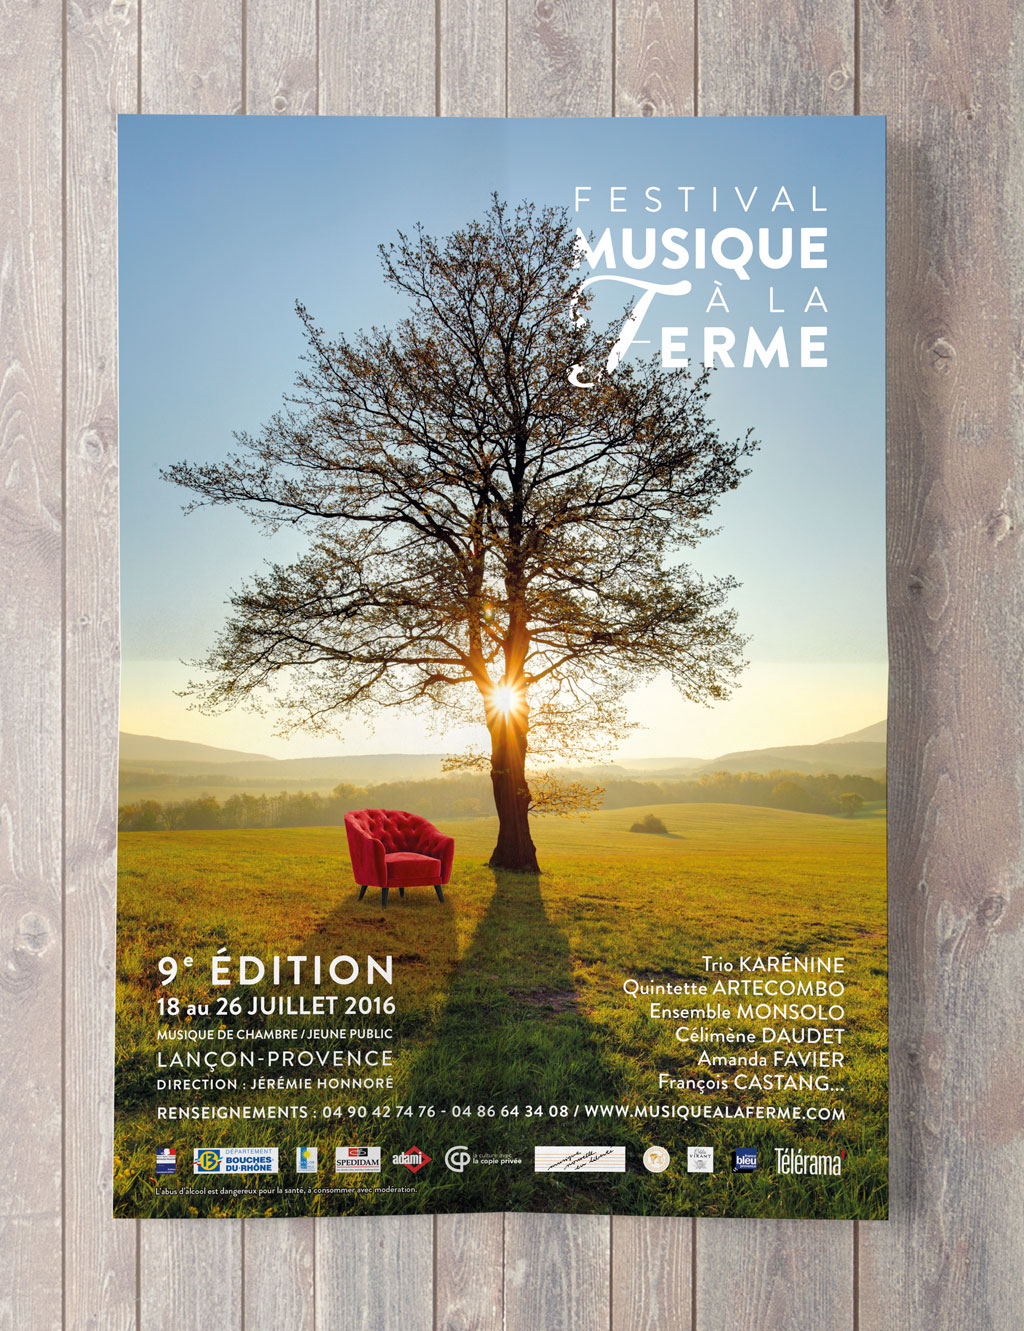 Poster for the Classical music Festival Musique à la Ferme during the 2016 summer in Provence © Calliopé Studio, Marine Pavé 2016